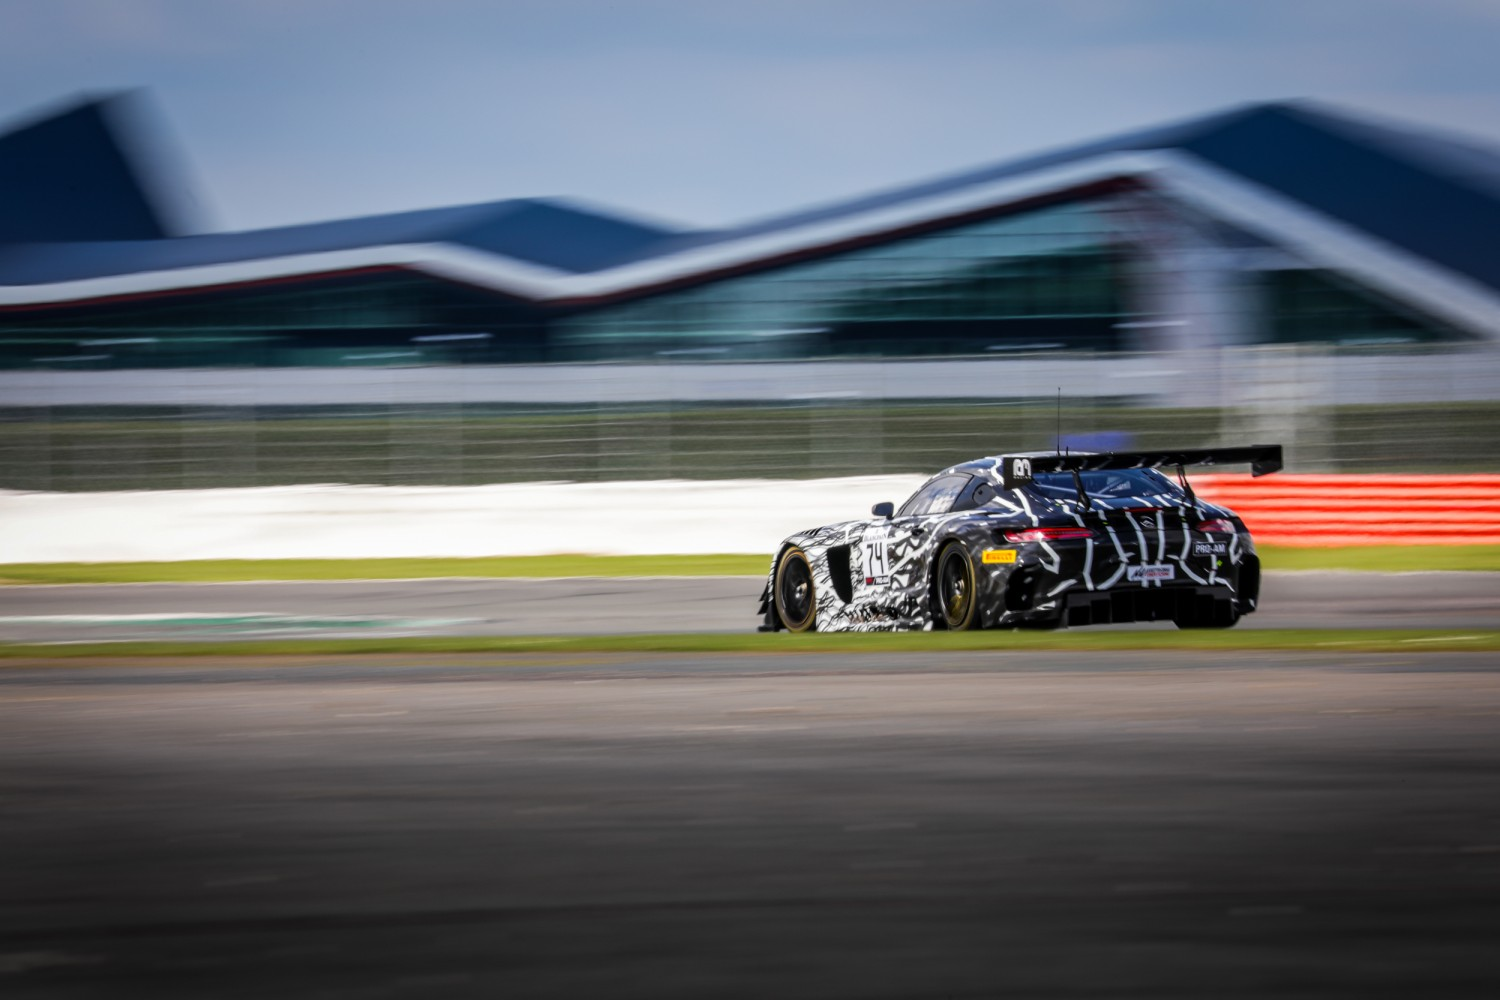 #74 Ram Racing GBR Mercedes-AMG GT3 Remon Vos NDL - - Tom Onslow-Cole GBR Pro-Am Cup, Free Practice  | SRO Motorsports Group